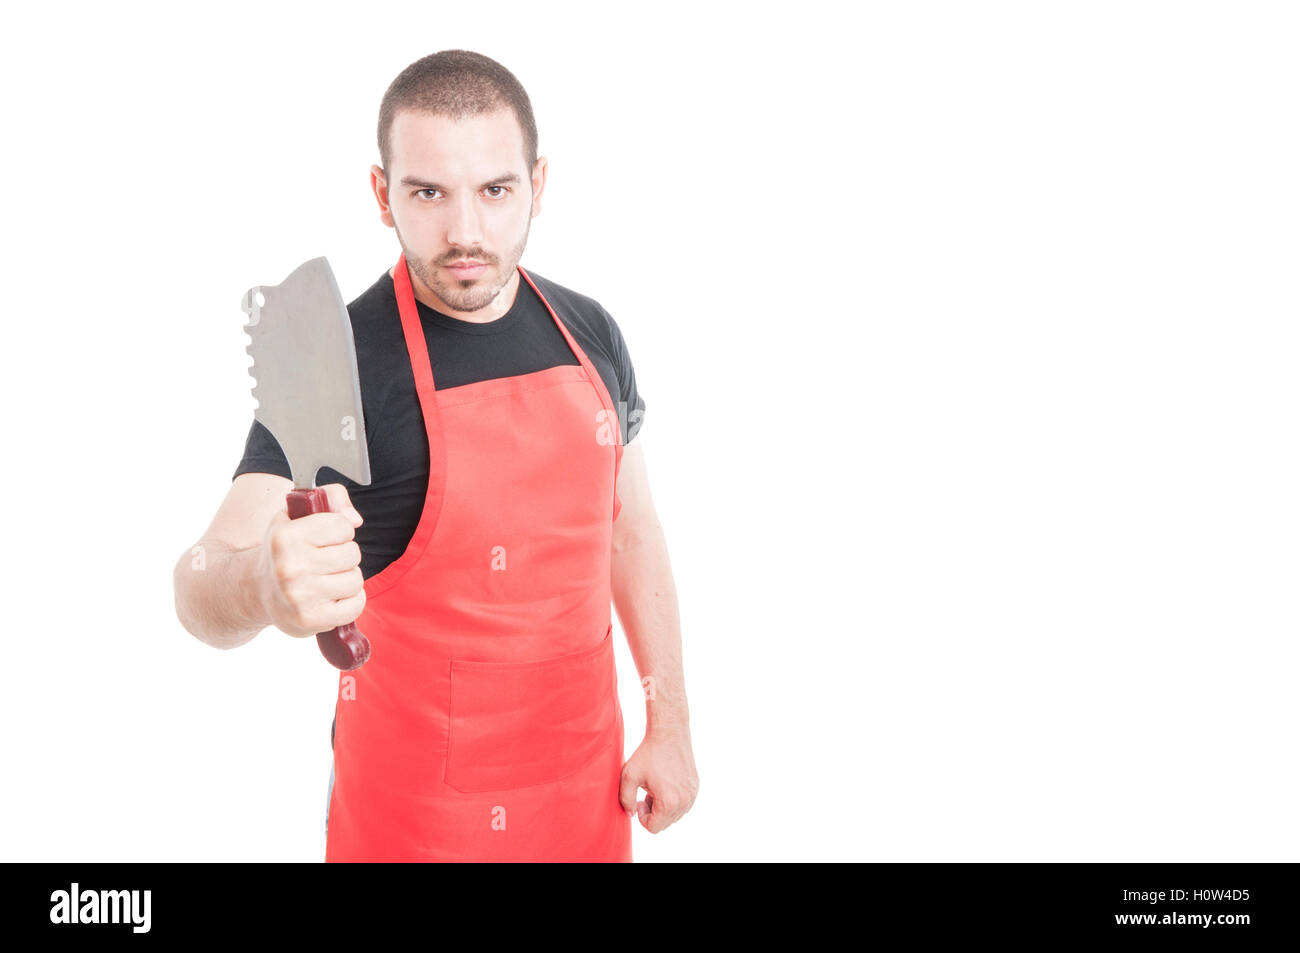 White apron meats - Serious Male Butcher In Red Apron Showing Meat Chopper On White Background With Advertising Area